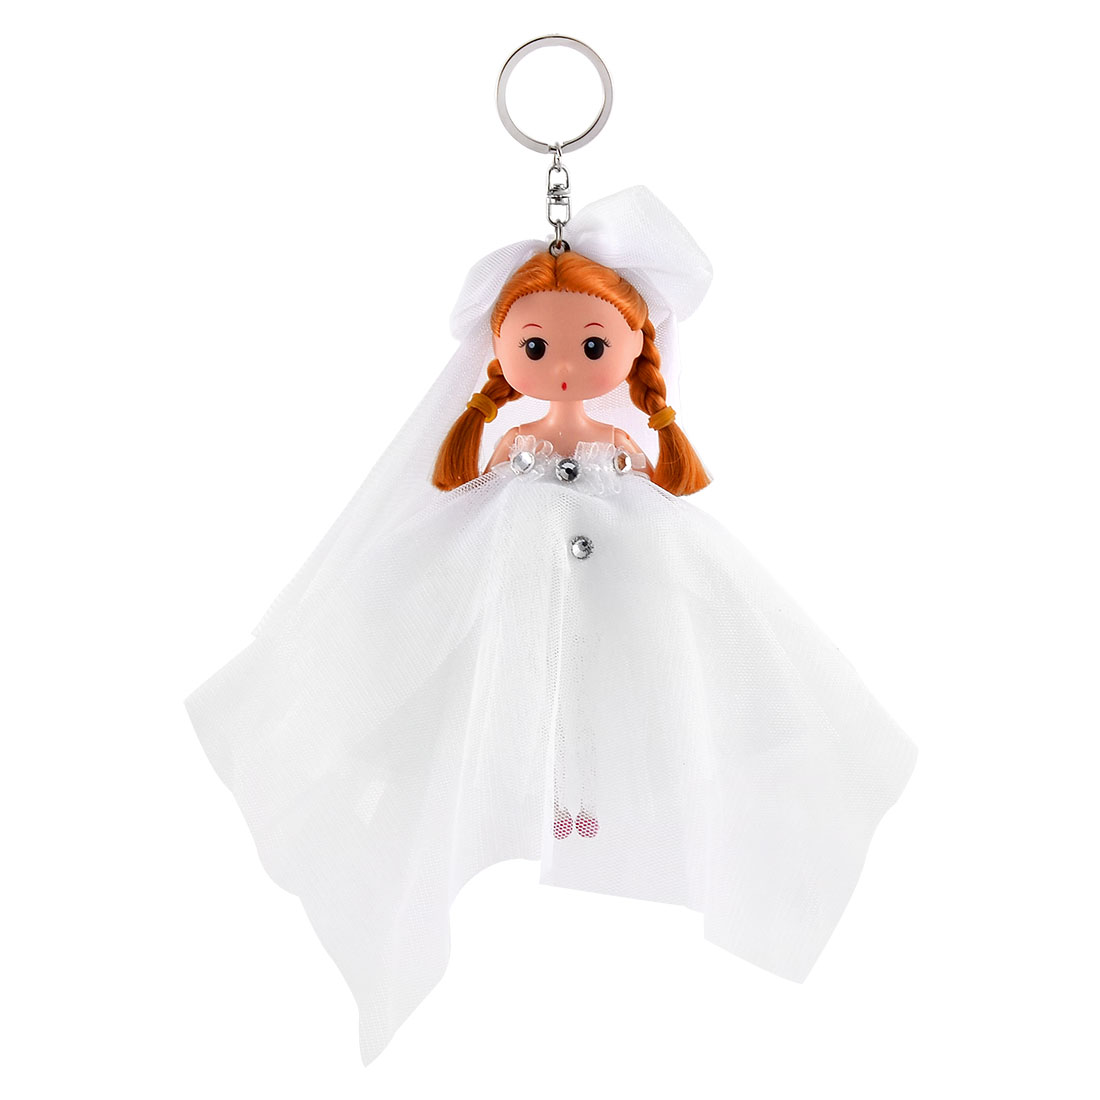 Girl Trunk Wedding Dress Toy Ornament Pendant Strap Doll Keychain Key Ring White